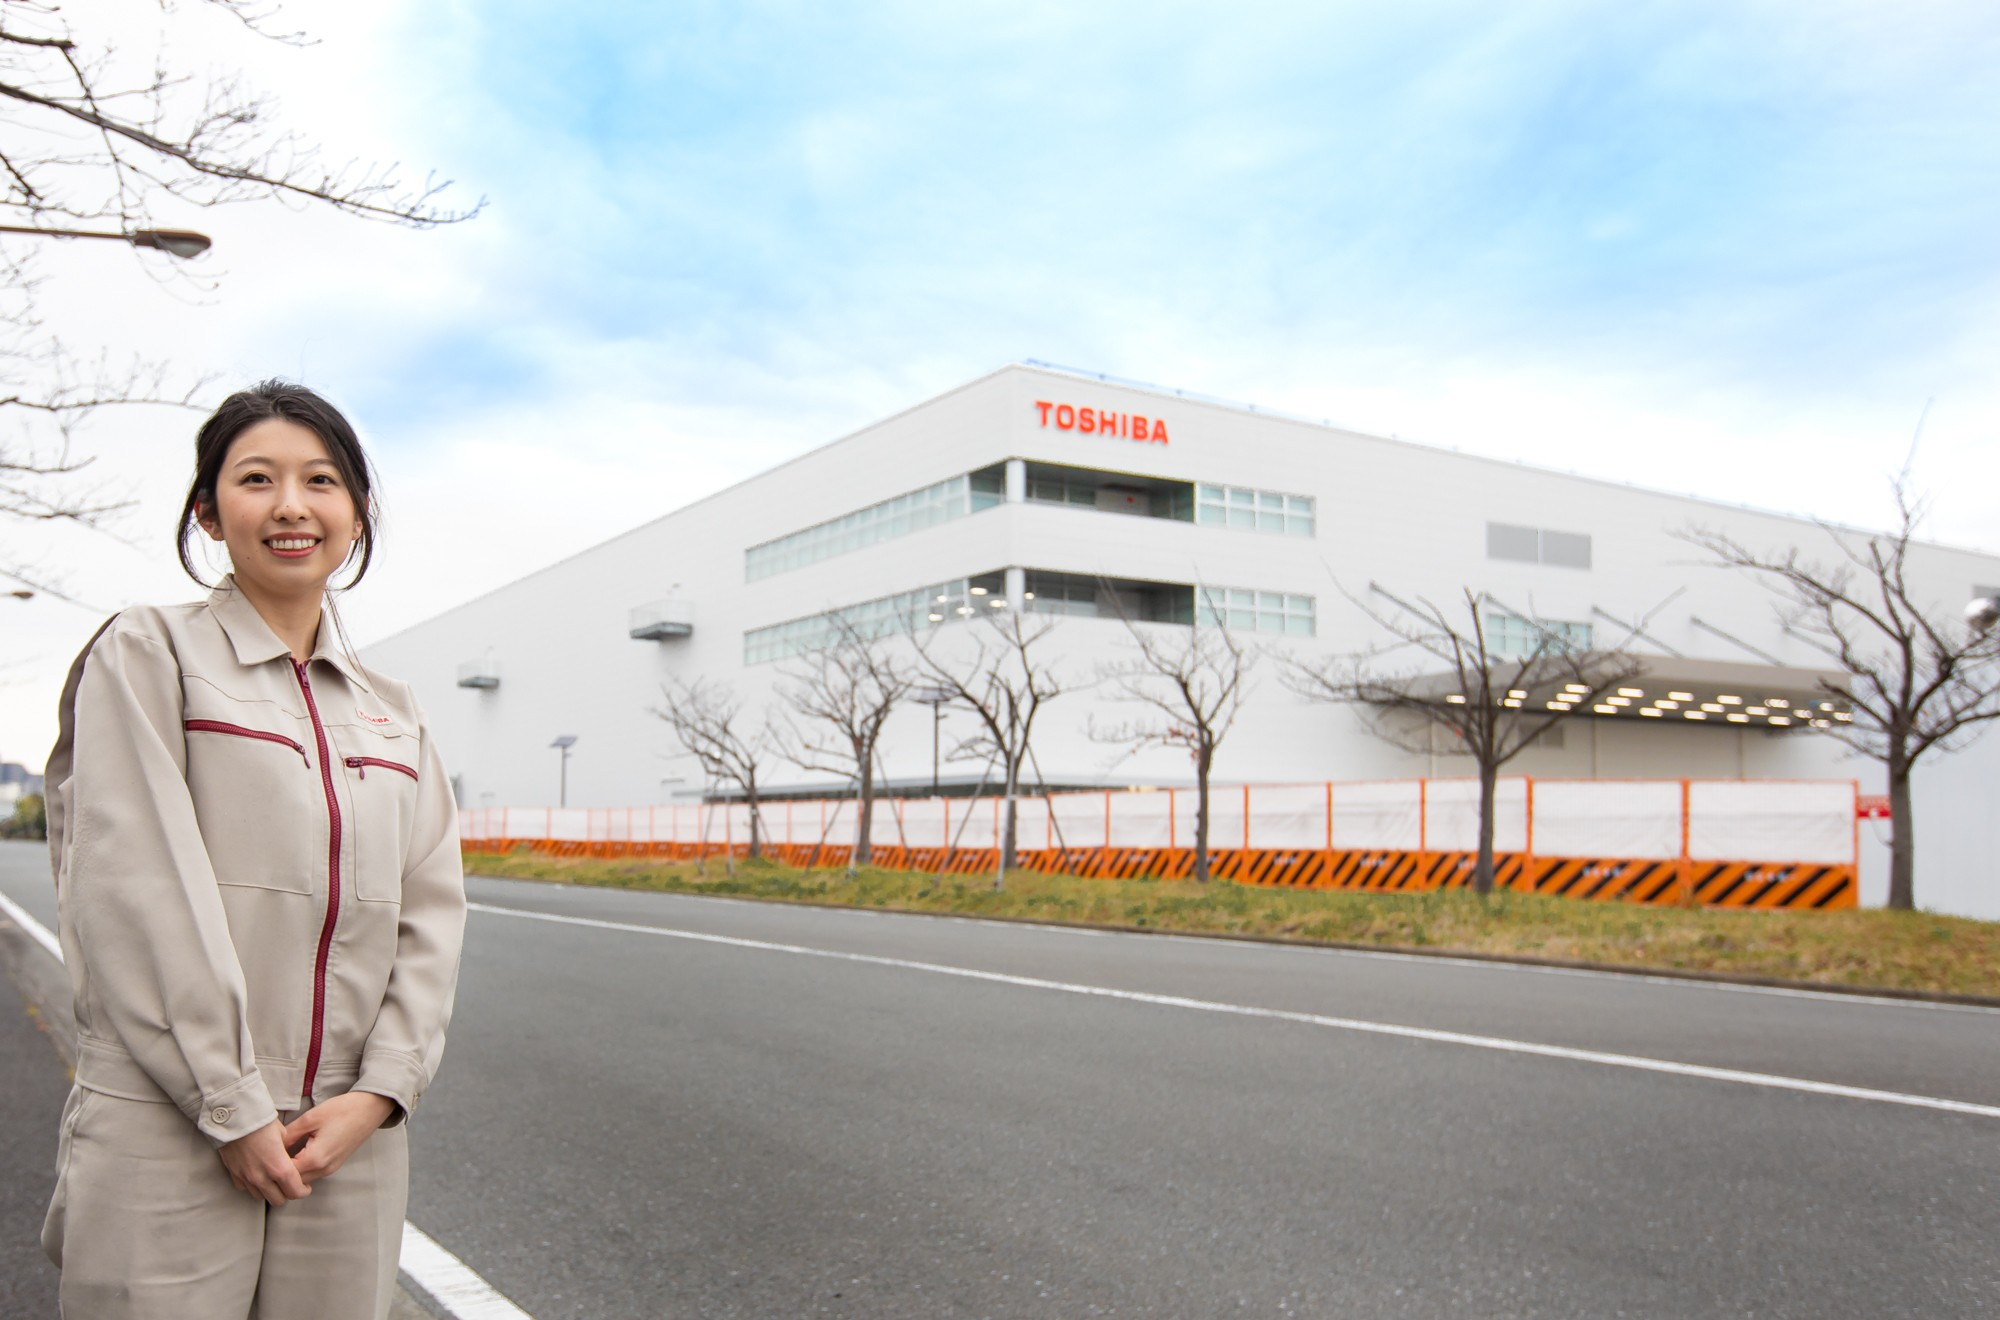 Toshiba's young engineers: Lithium-ion Batteries Will Build the Future